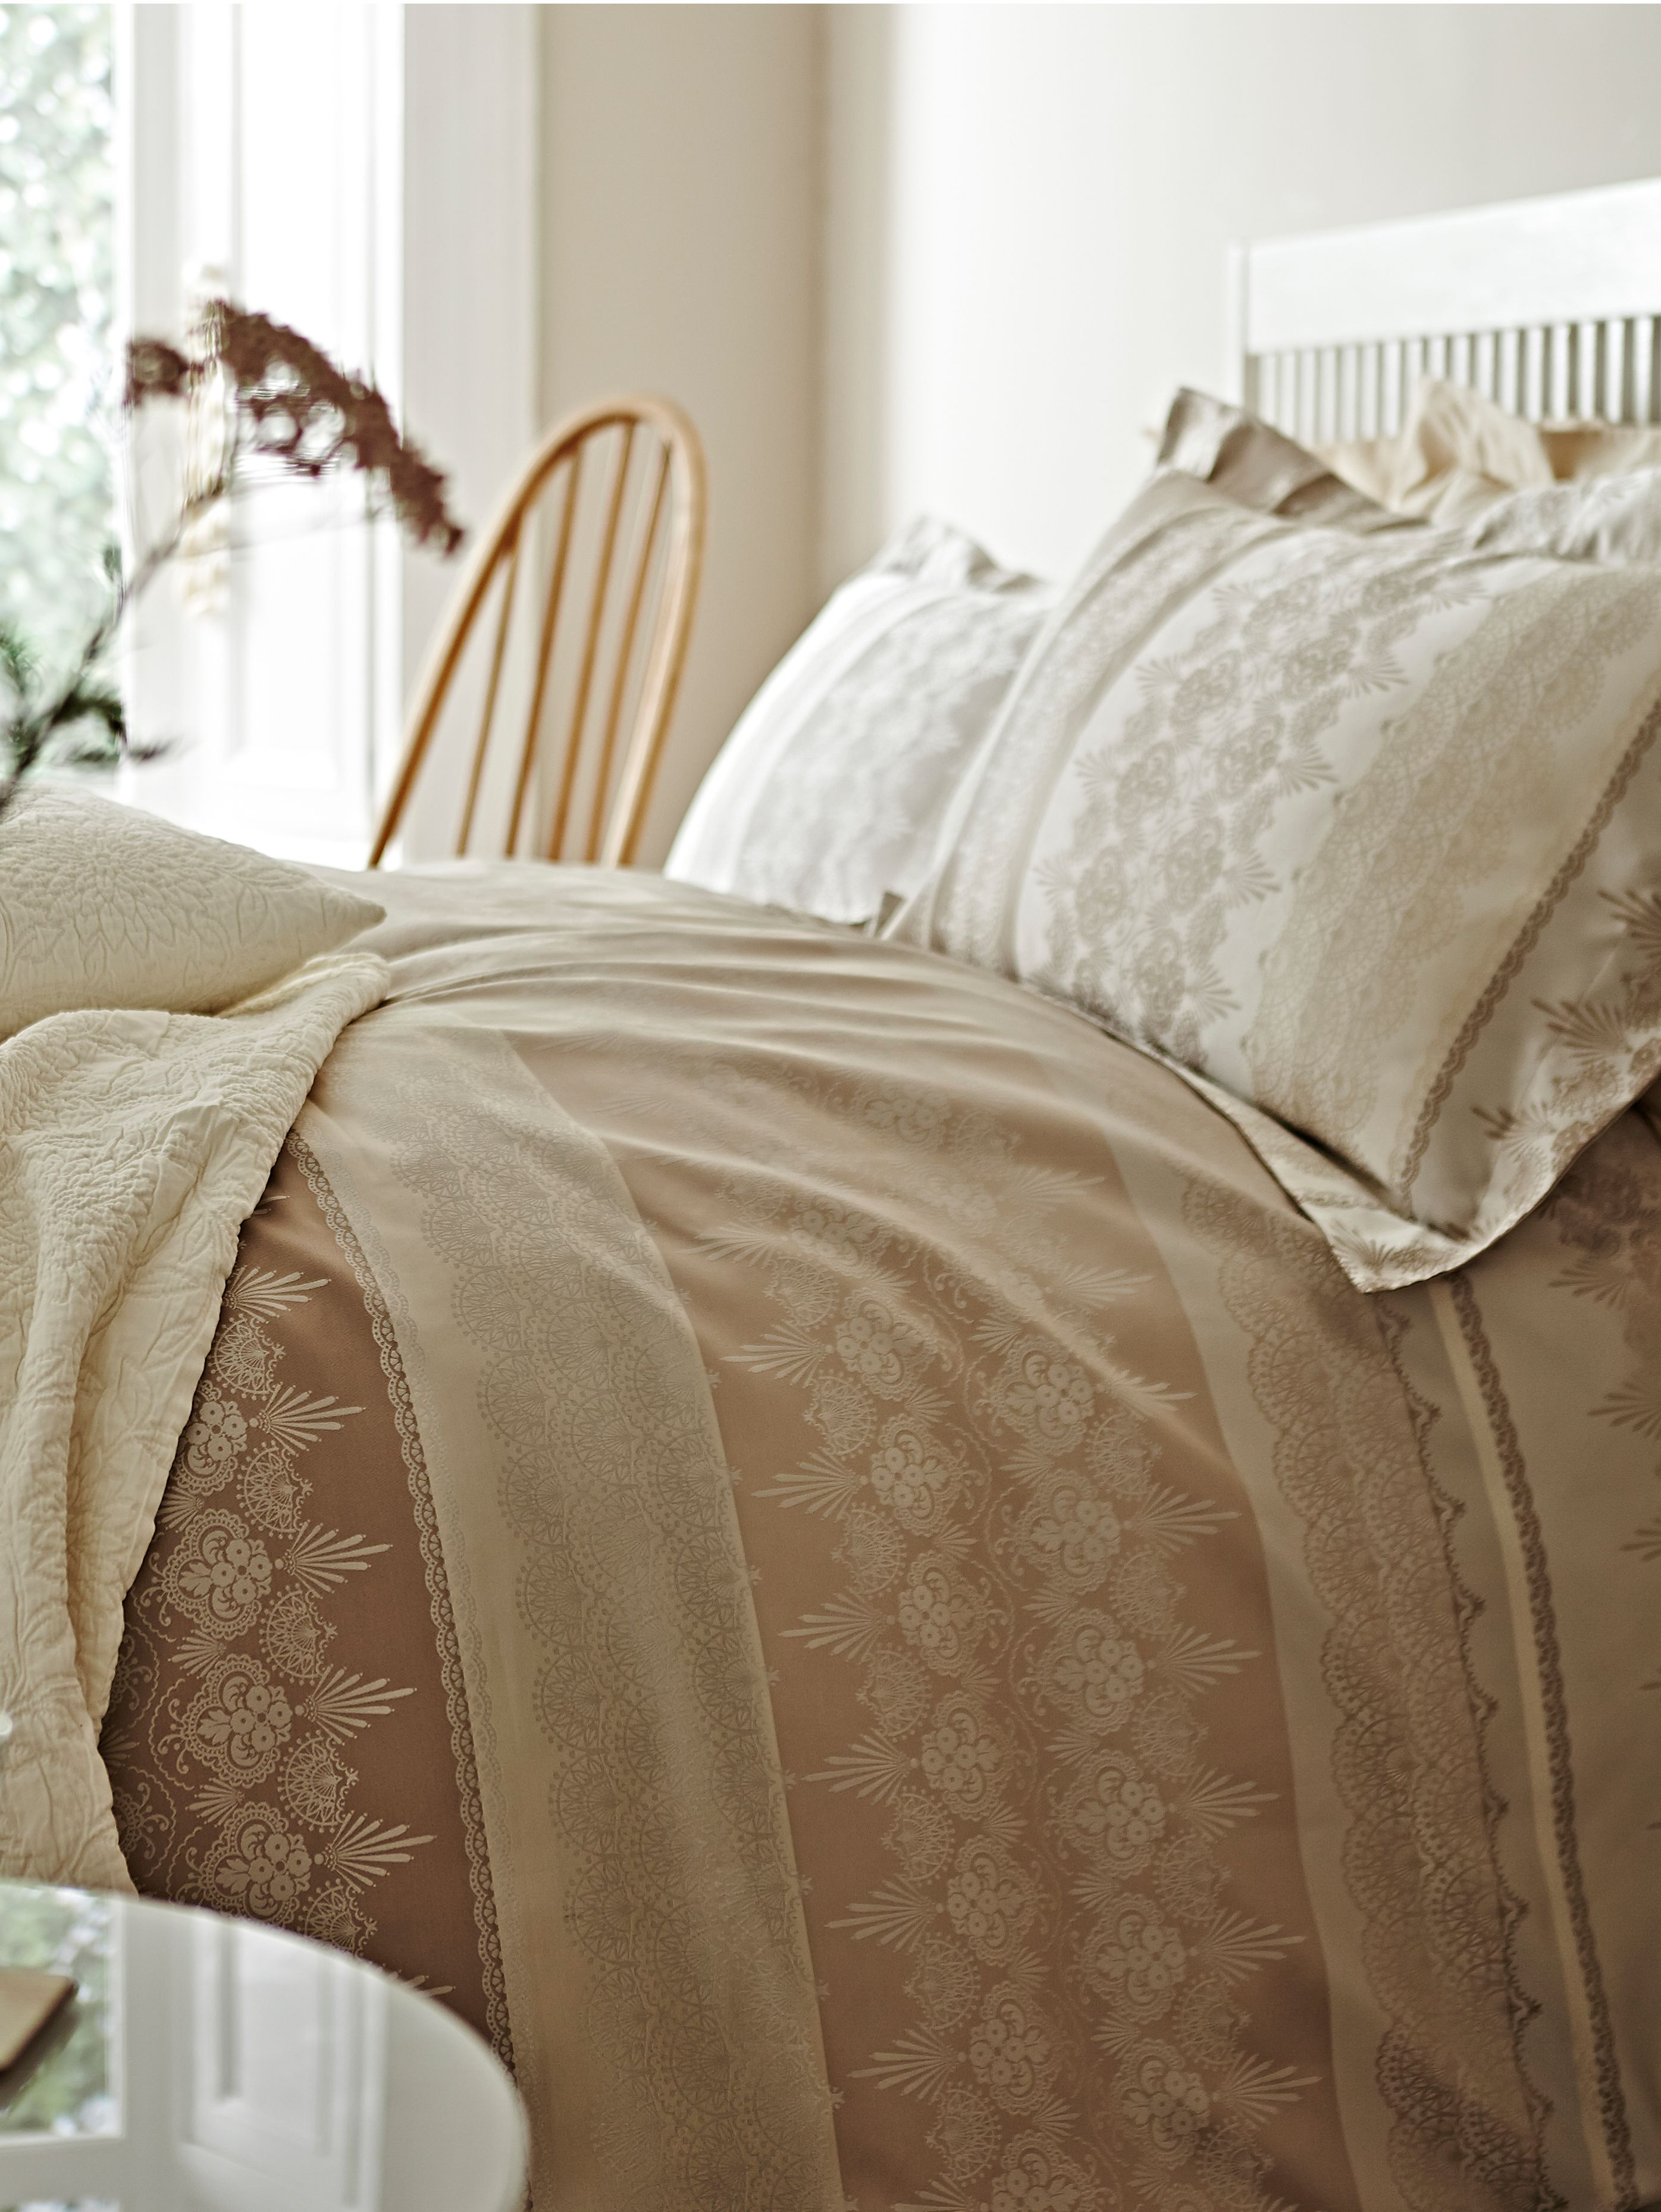 Lace jacquard single duvet set